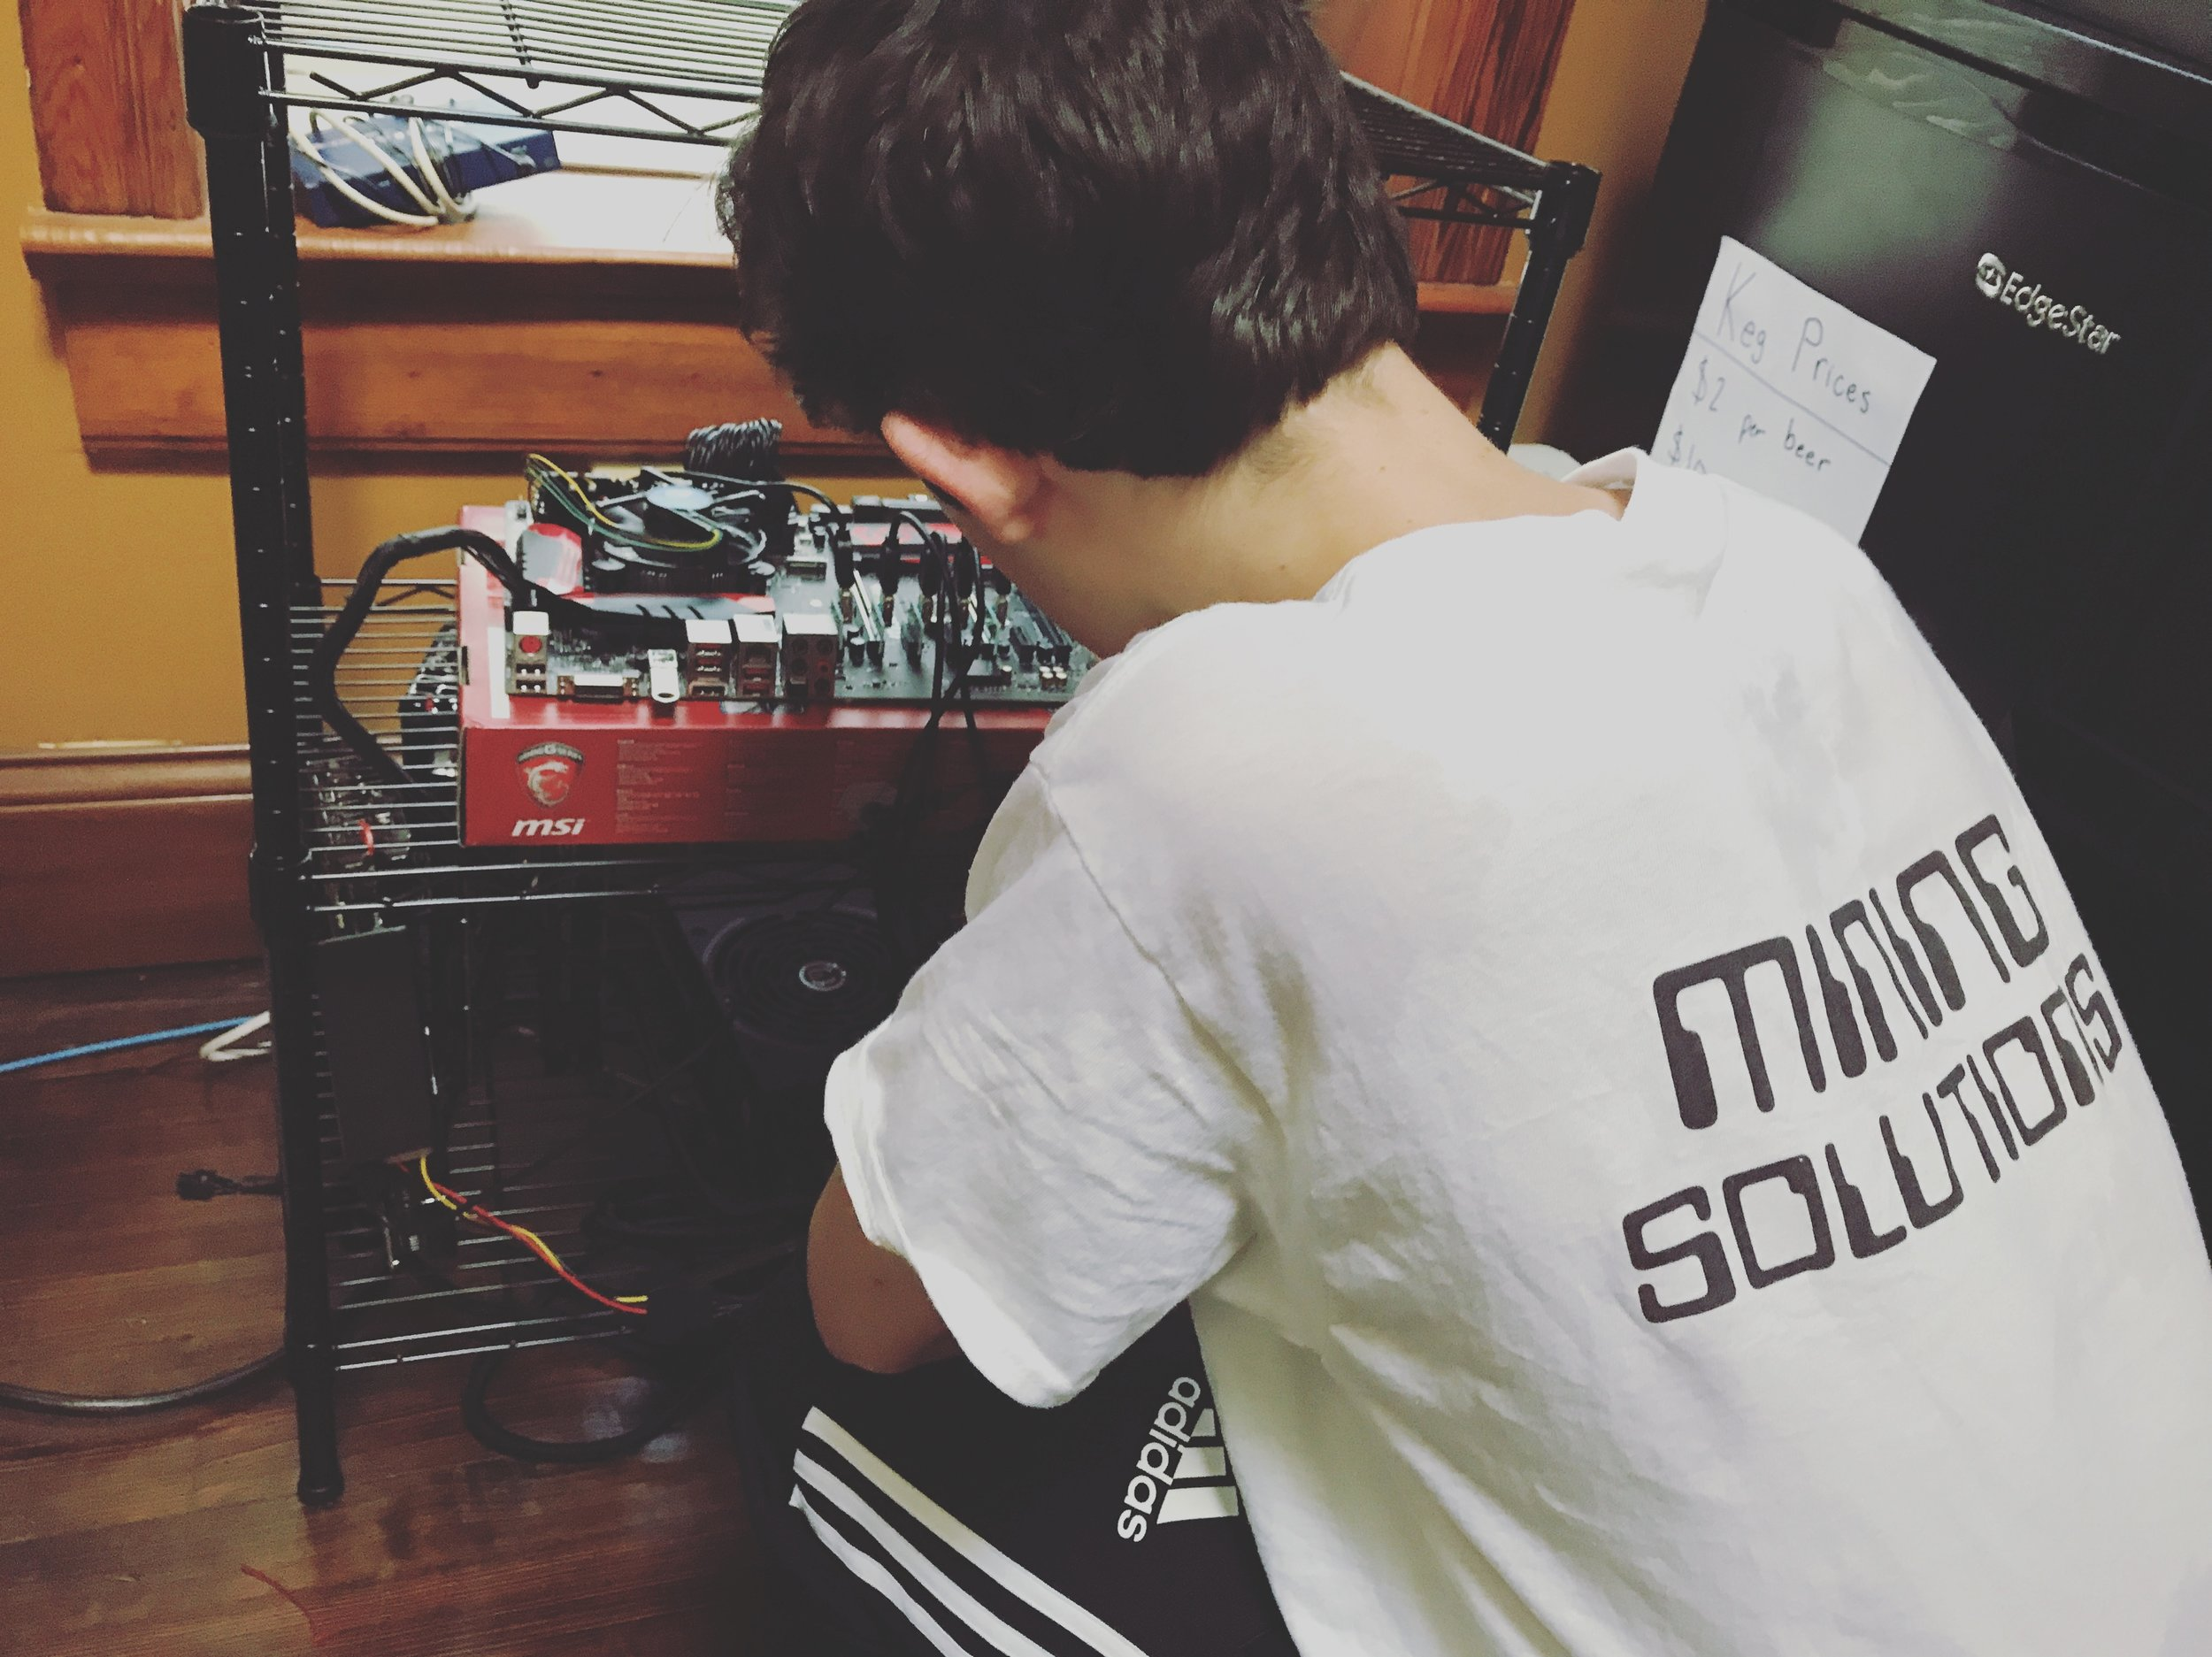 CCG Mining Solutions manager working on a Zcash GPU miner.